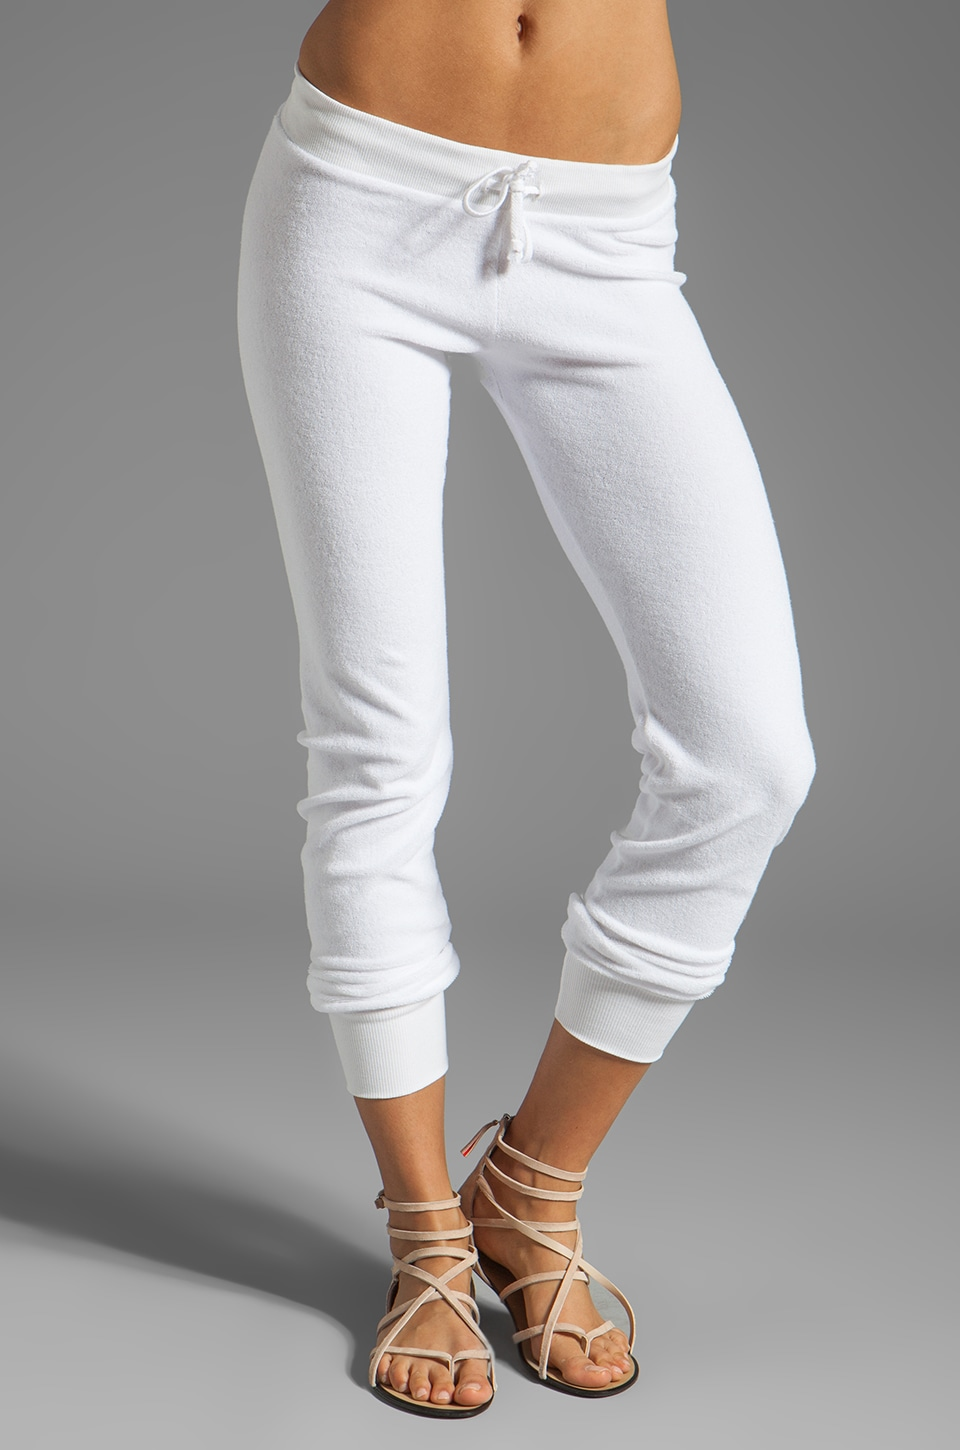 291 Slim Track Pant in White